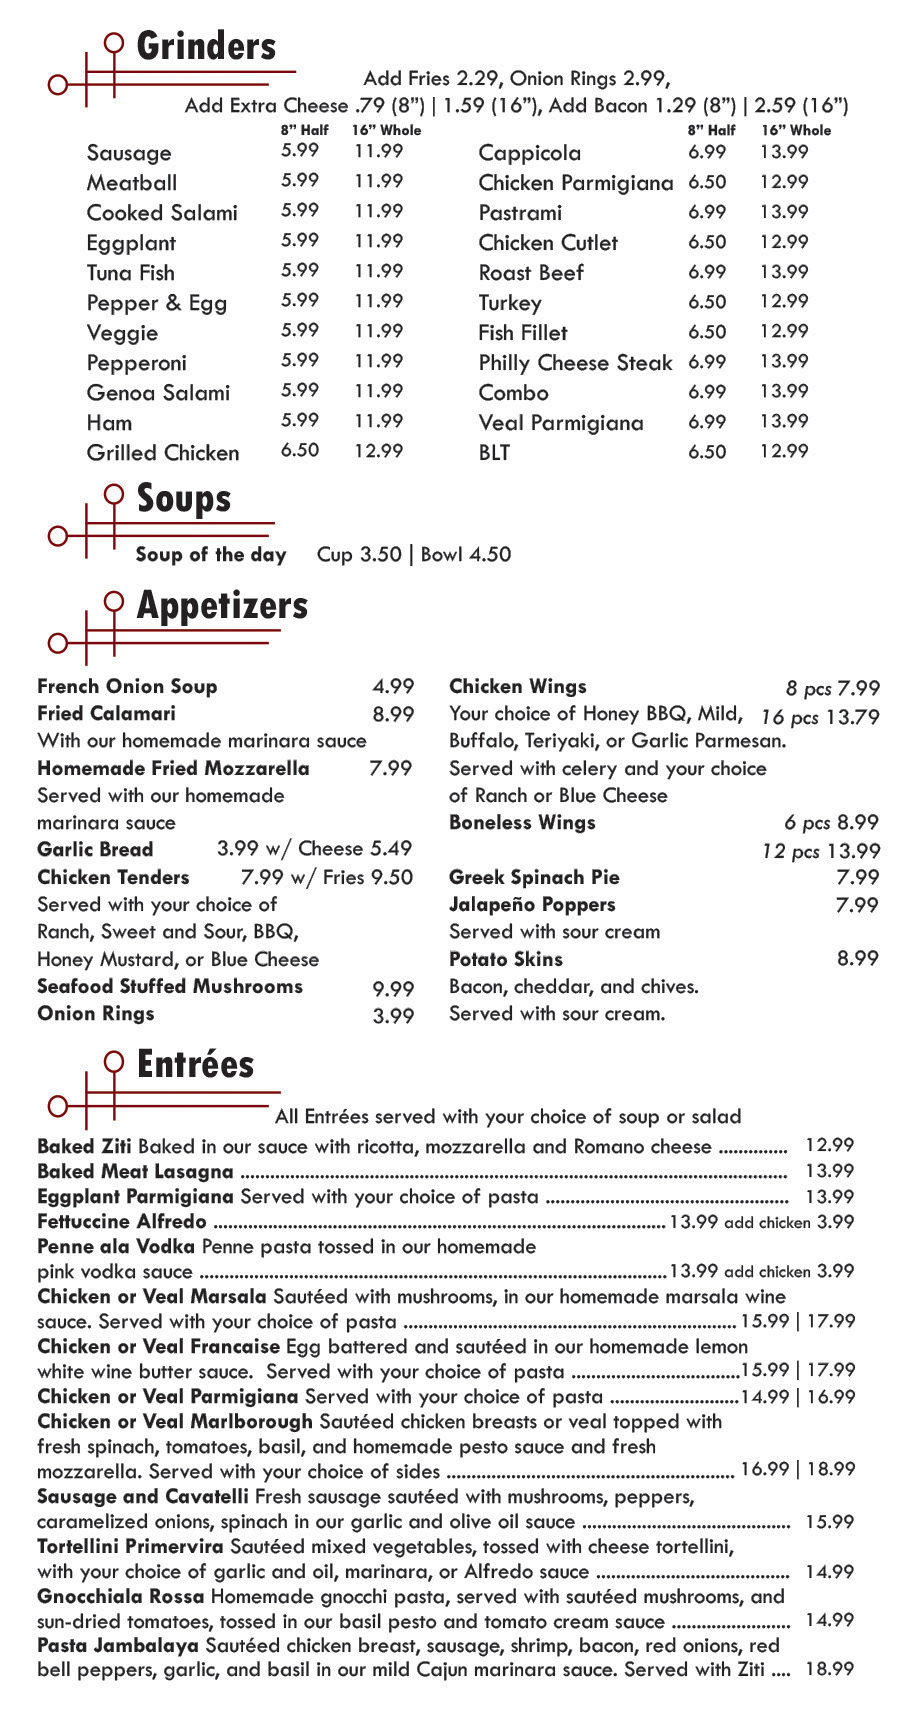 190362_take-out_5-5x10-5_menu-2